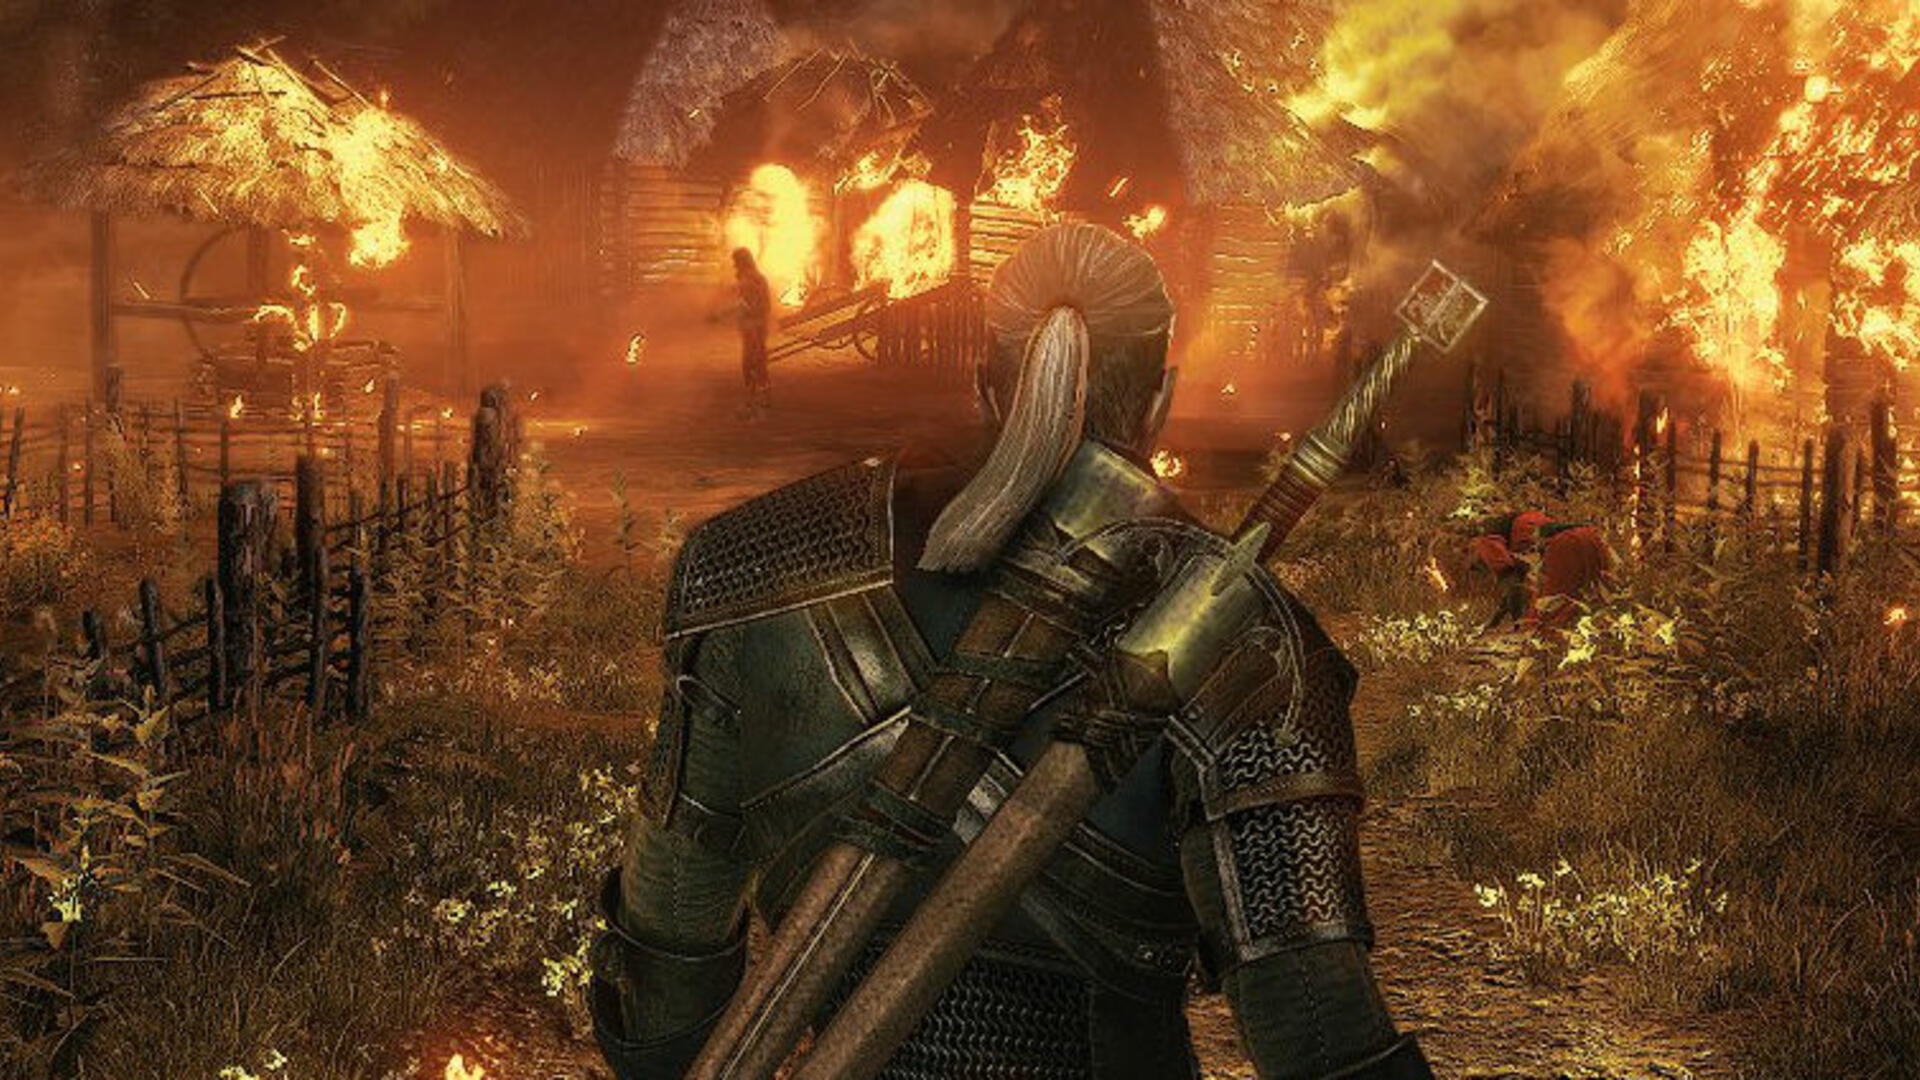 Witcher Author Demands $16 Million From CD Projekt Red